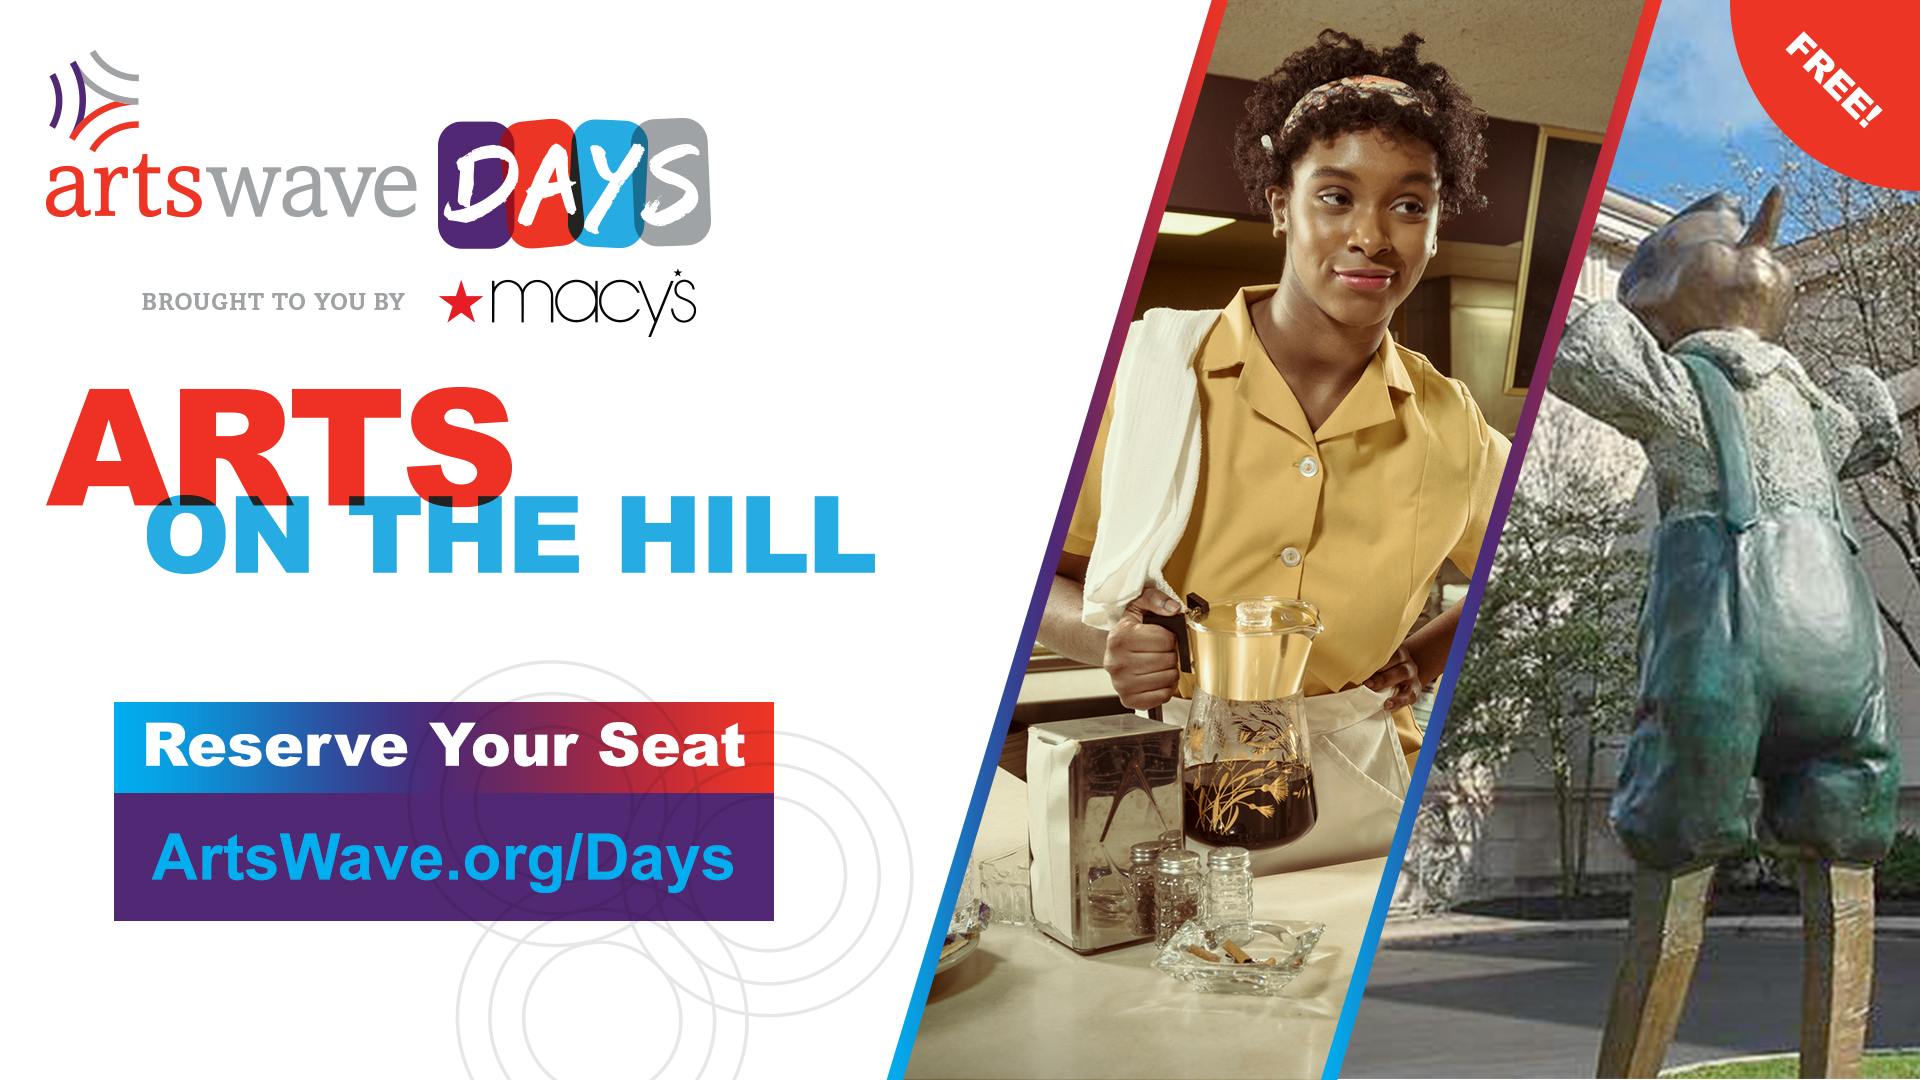 ArtsWave Days Arts on the Hill.jpg